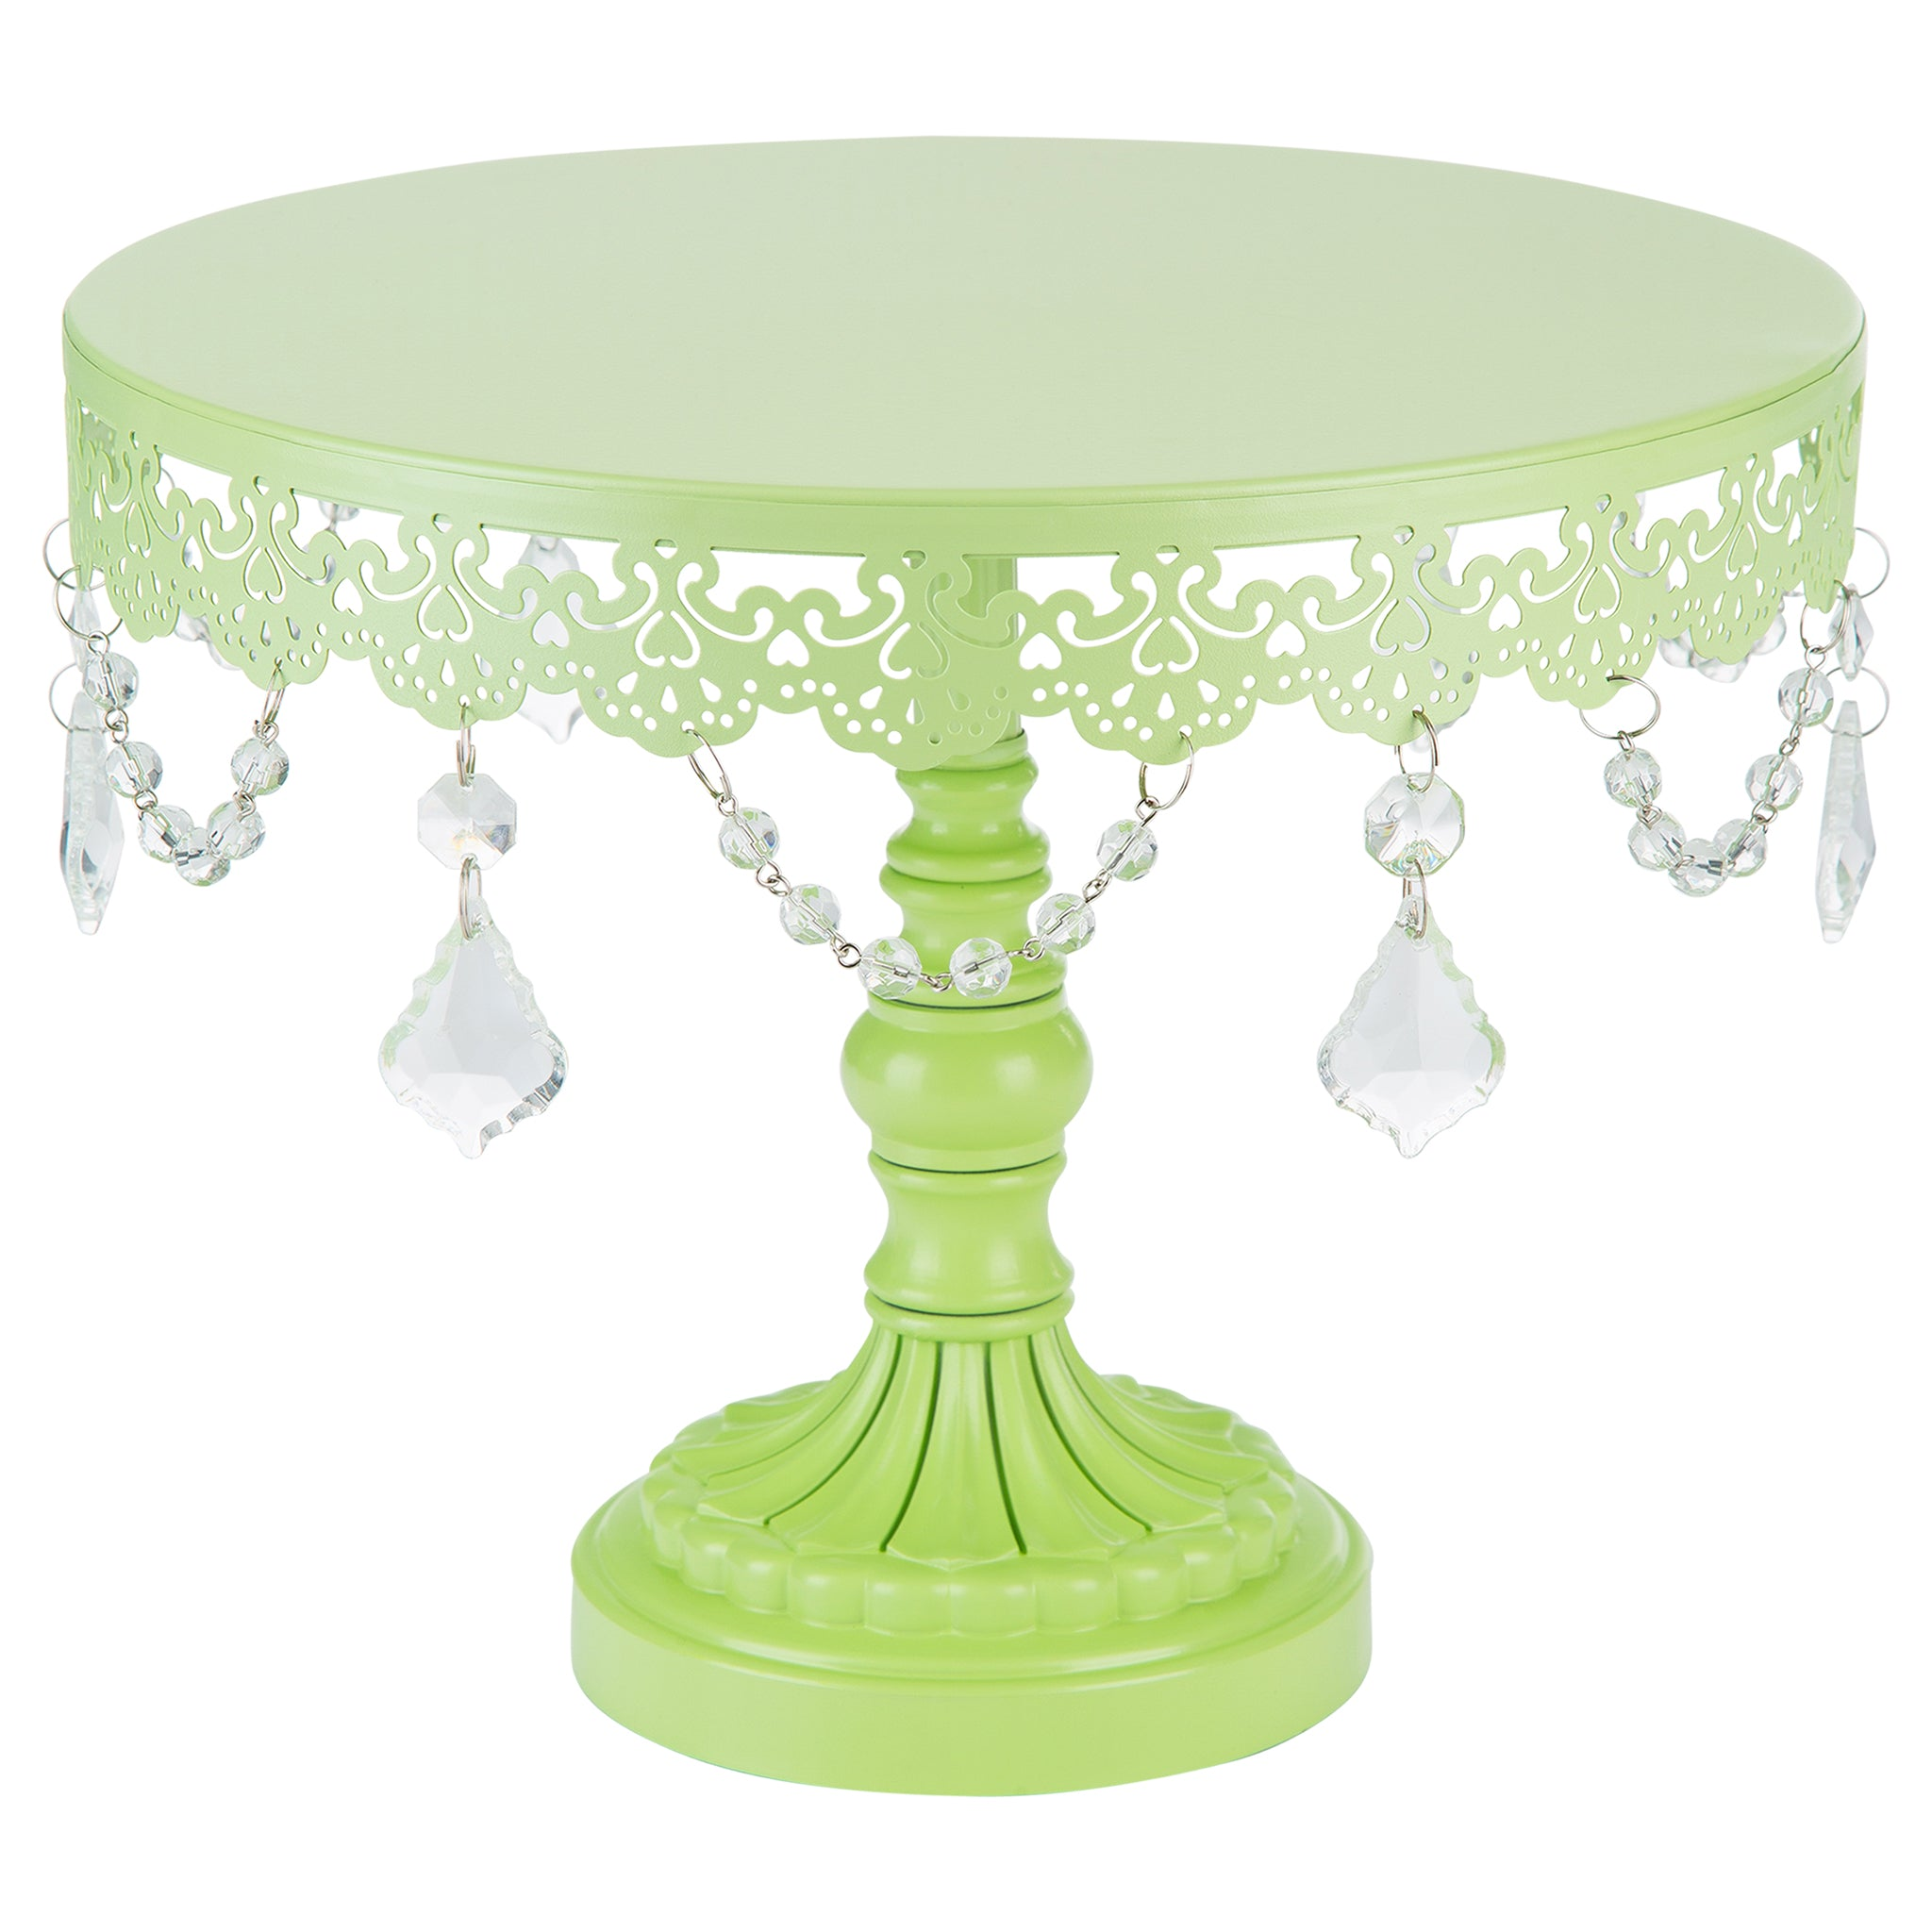 Amalfi Decor 10 Inch Crystal-Draped Round Metal Cake Stand (Lime Green) | Stainless Steel Frame